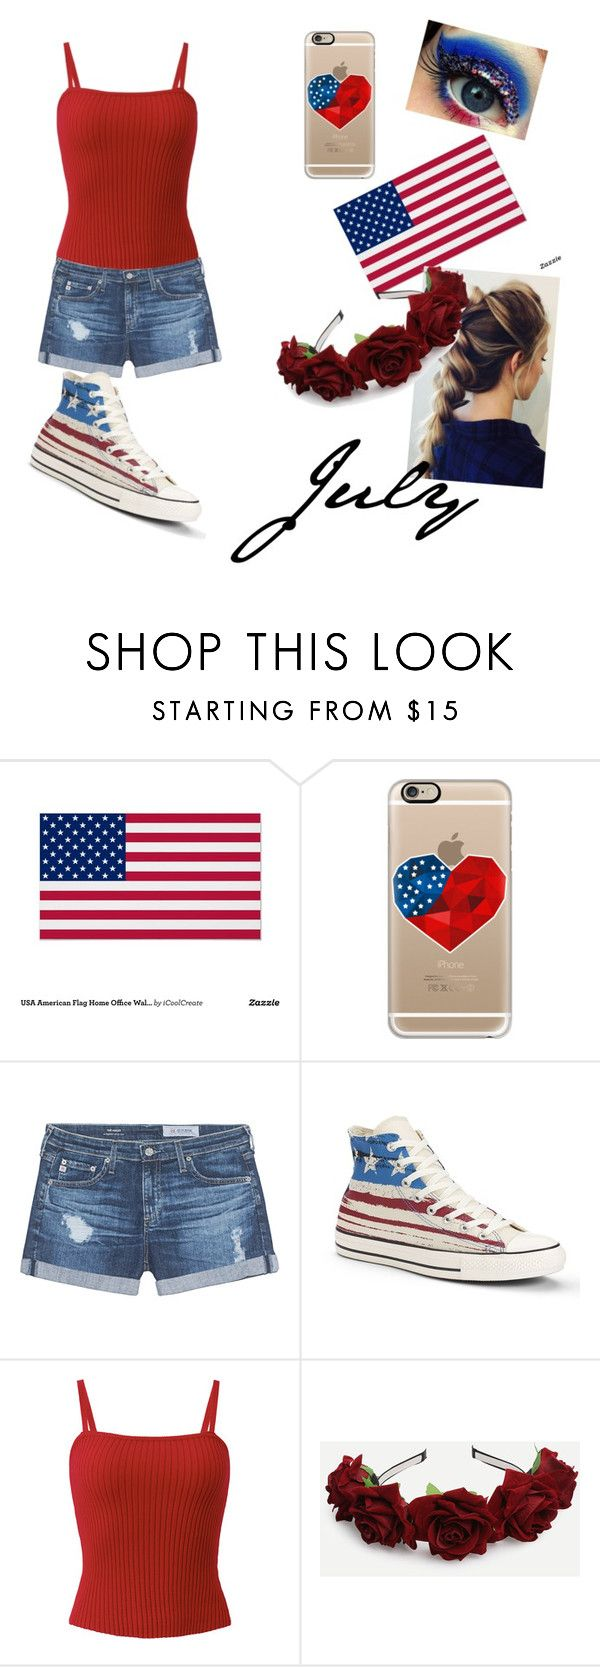 """July #7"" by ellahiguera ❤ liked on Polyvore featuring Casetify, AG Adriano Goldschmied and Converse"